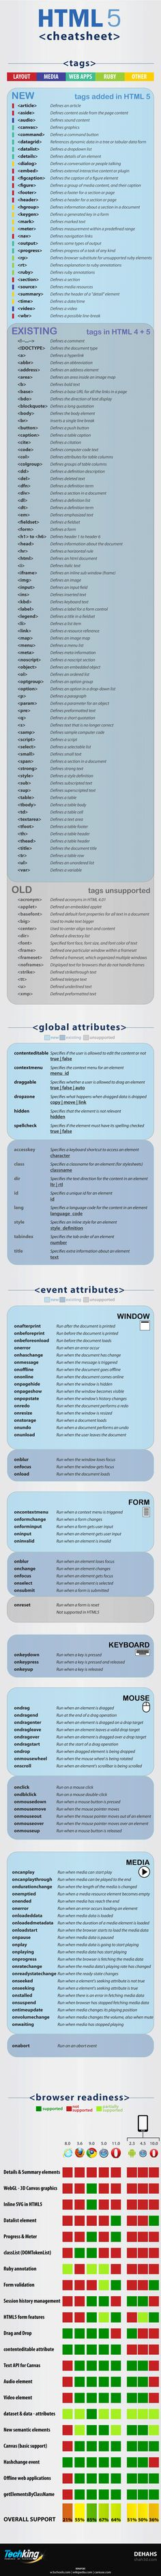 html 5- i barely understand it but i love a good cheat sheet nonetheless